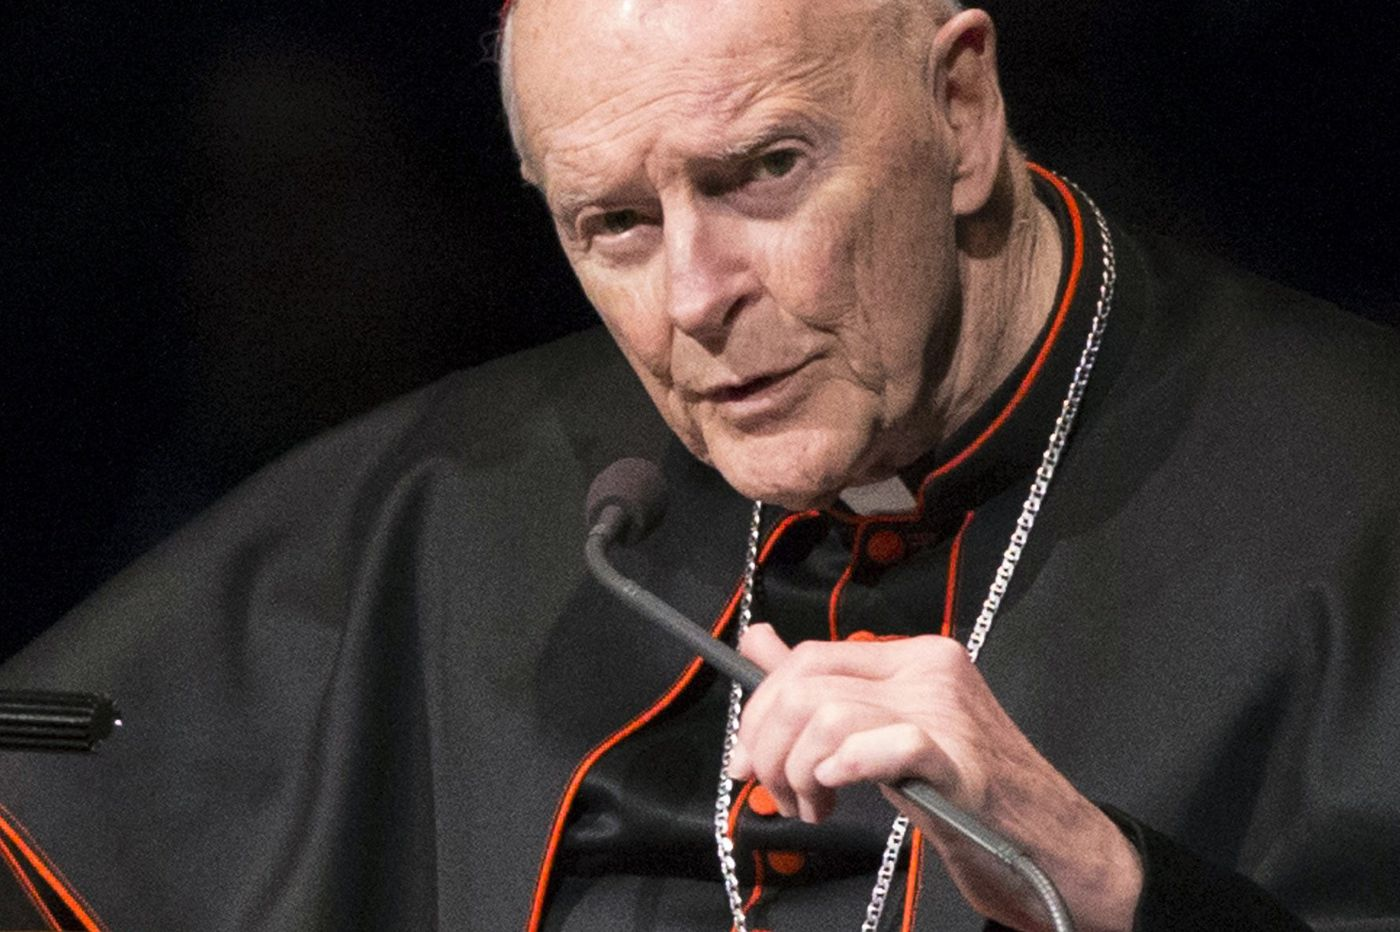 Four months after Cardinal McCarrick's resignation, Vatican remains silent on his fate